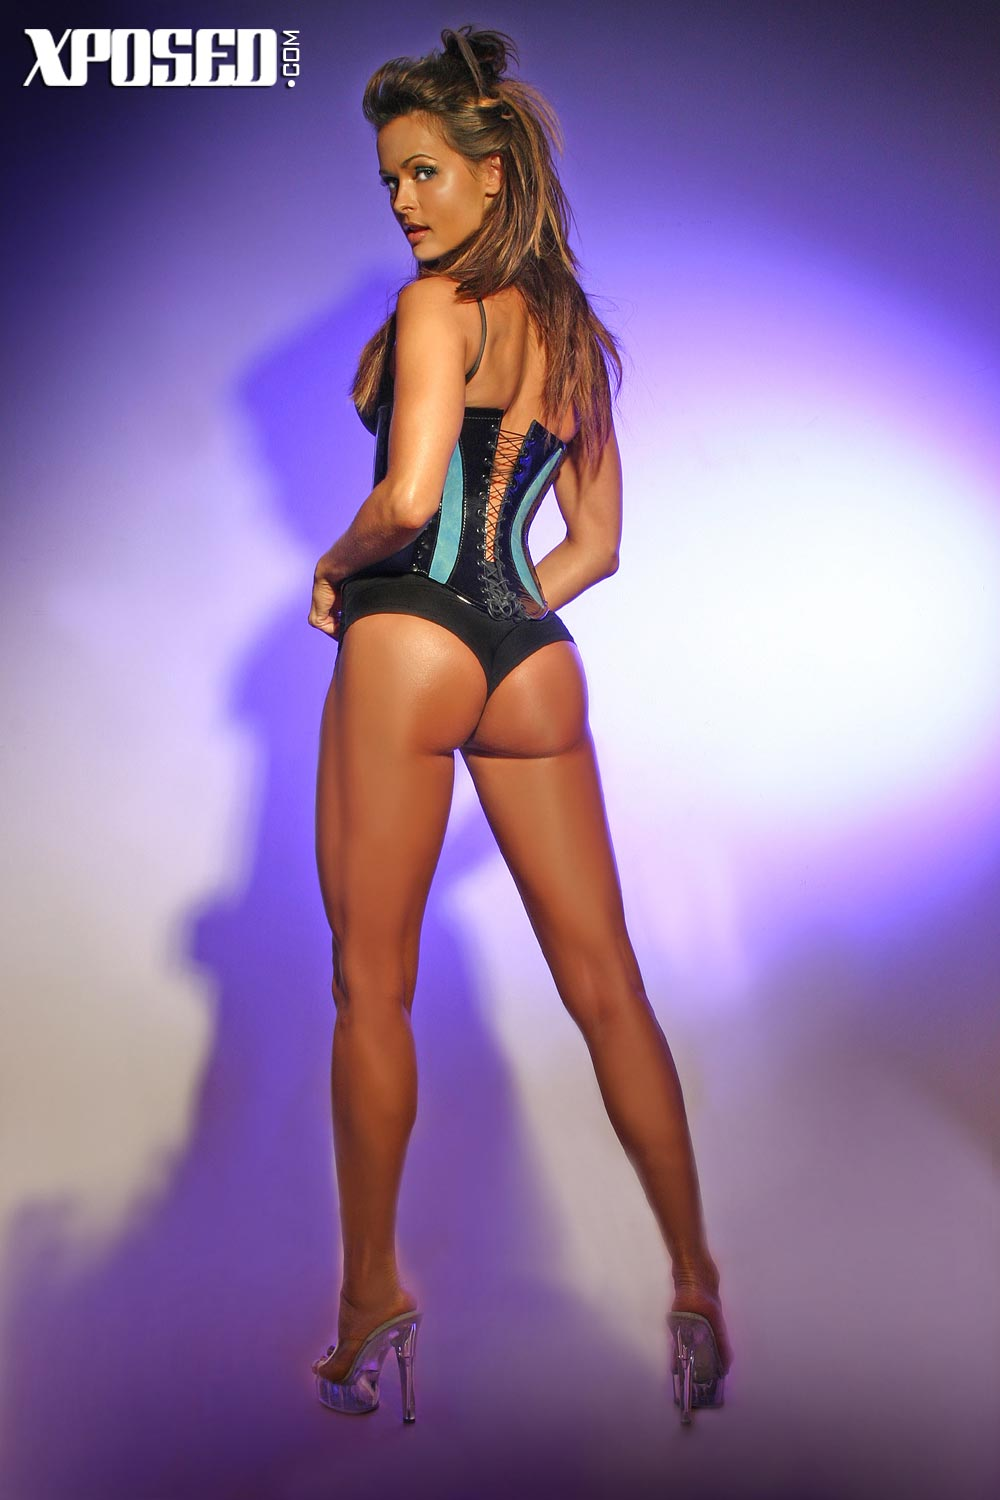 karen mcdougal hot ass (2)